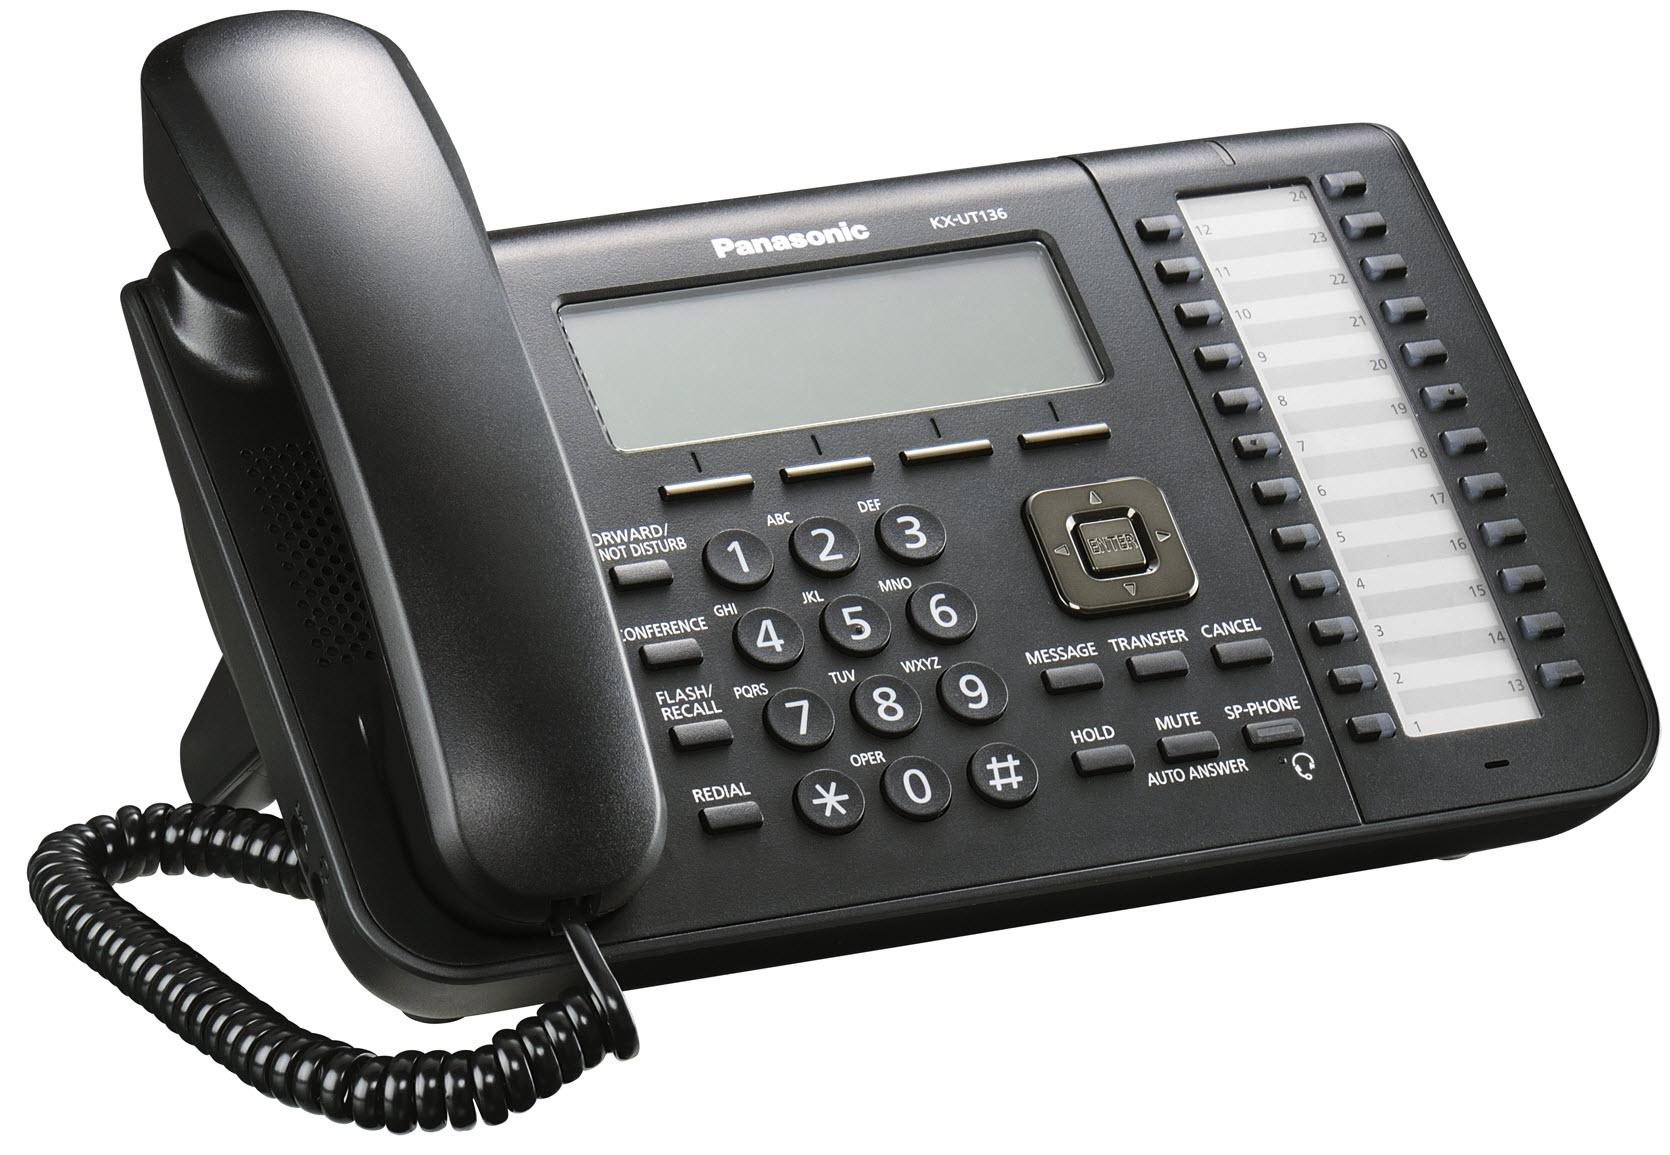 Enabling the Web Interface on the Panasonic KX-UT VoIP Phones